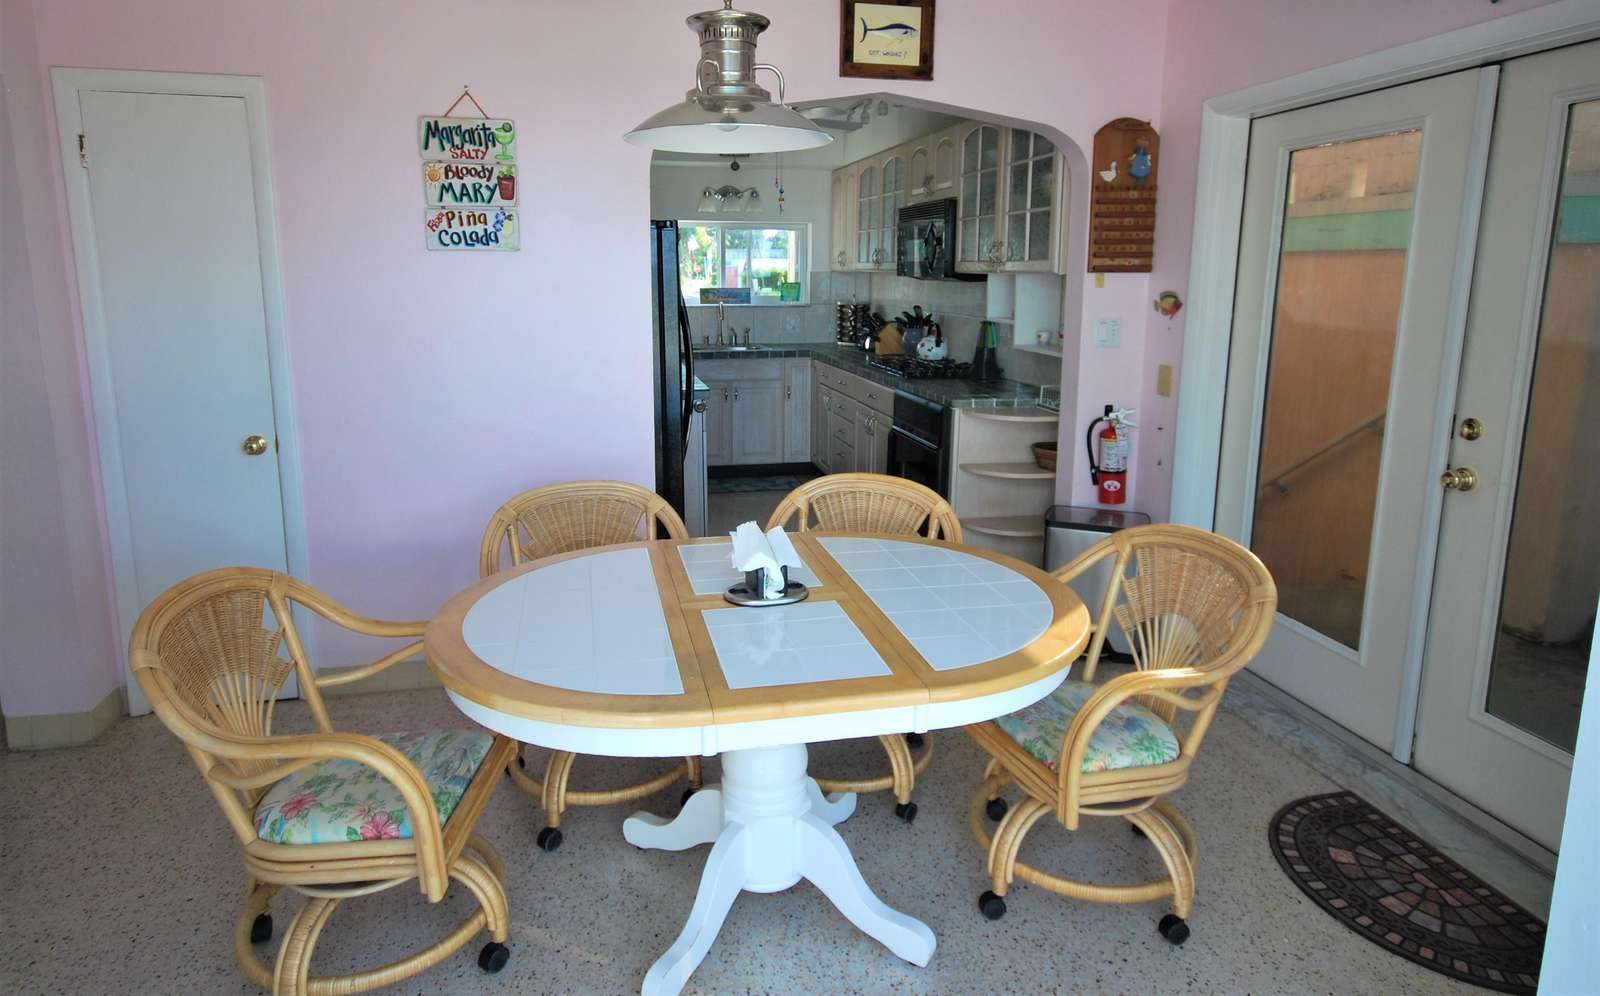 The inside dining area has walkout doors leading to the back patio for more dining space